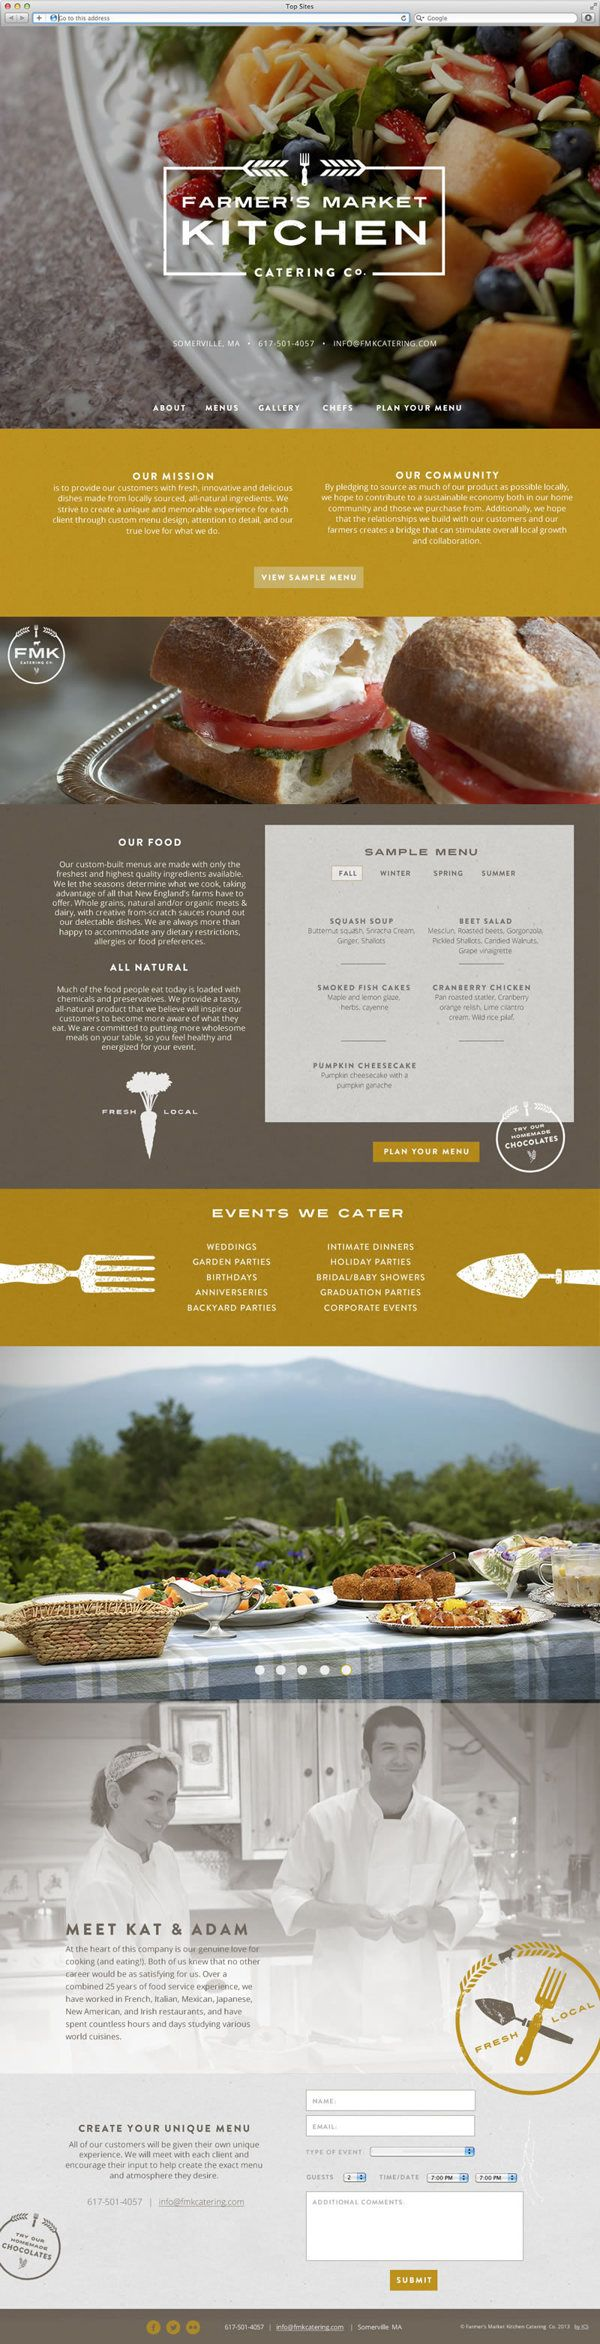 Catering Web Design // Farmer's Market Kitchen by Image Conscious Studiois